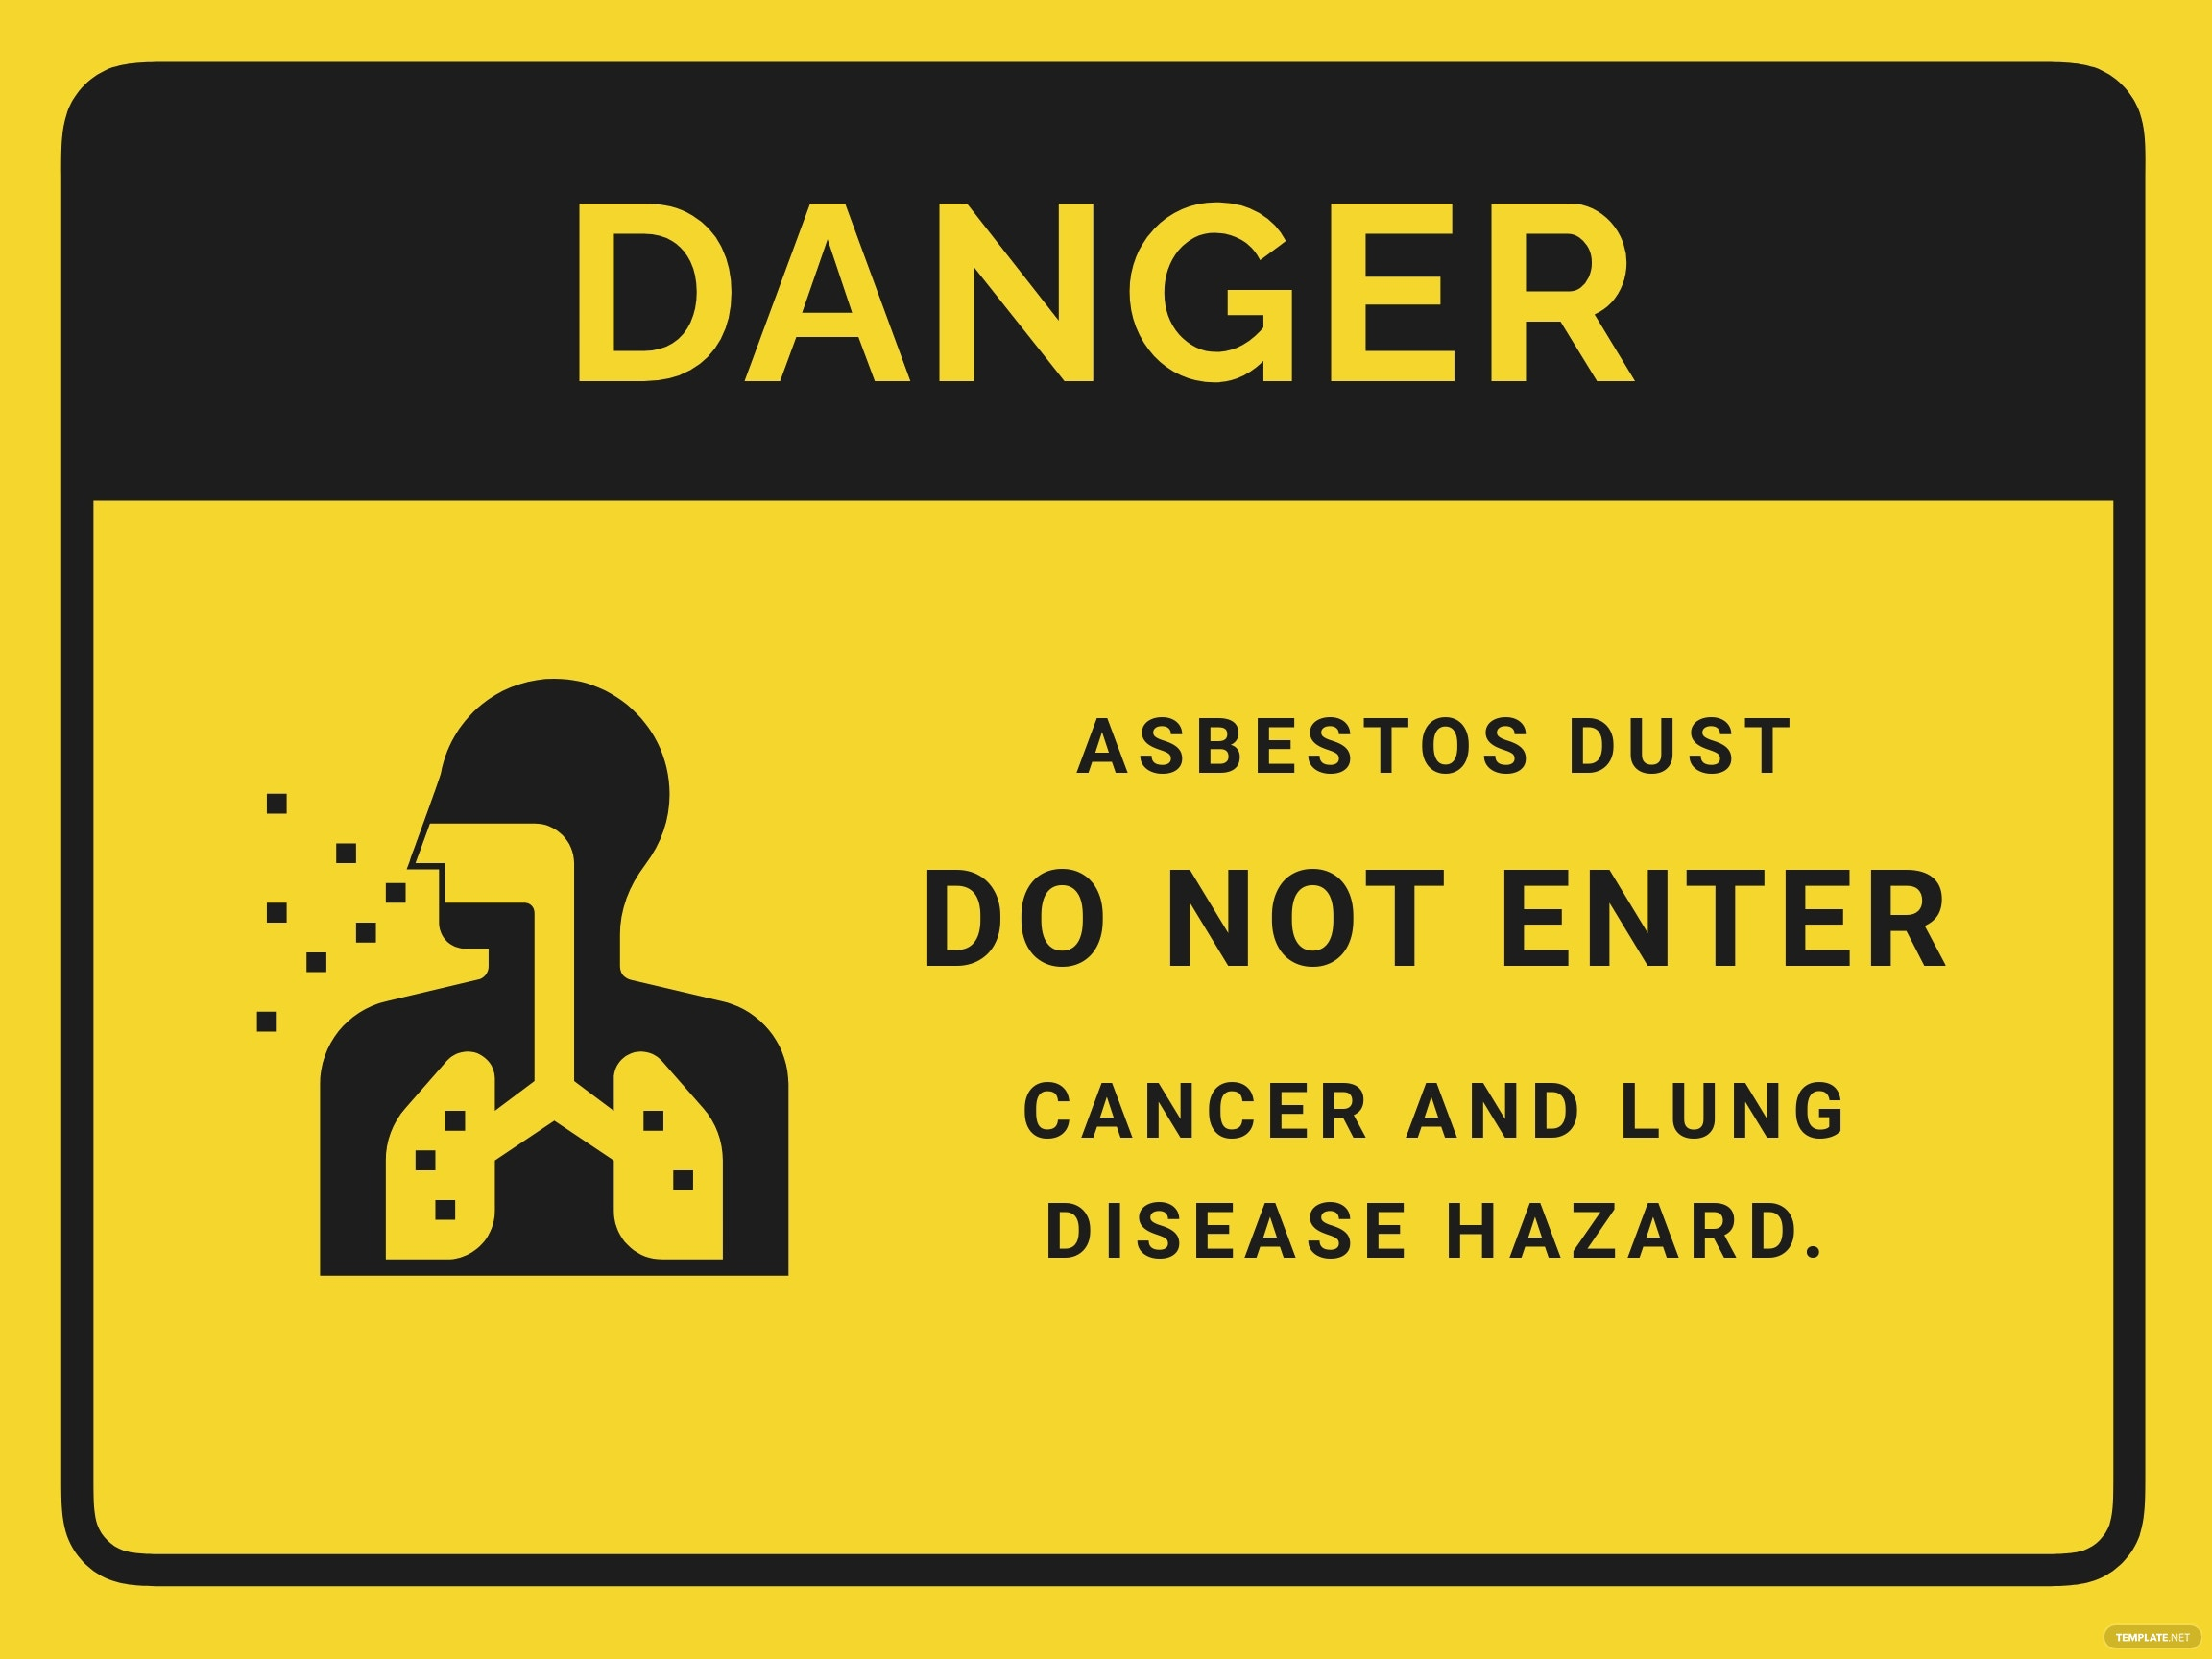 Asbestos Dust - Do Not Enter Sign Template